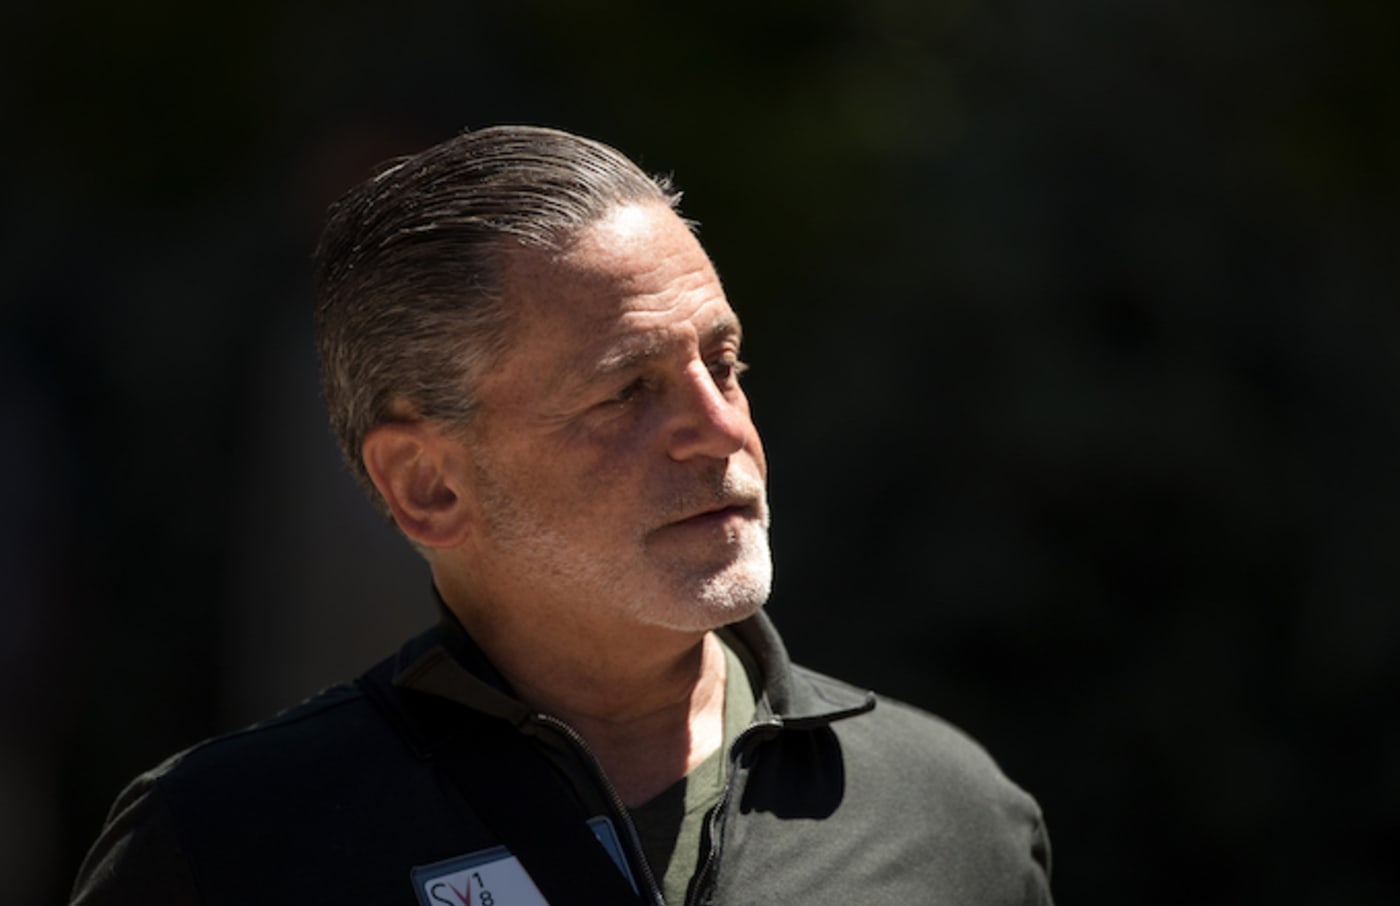 Dan Gilbert attends the annual Allen & Company Sun Valley Conference.